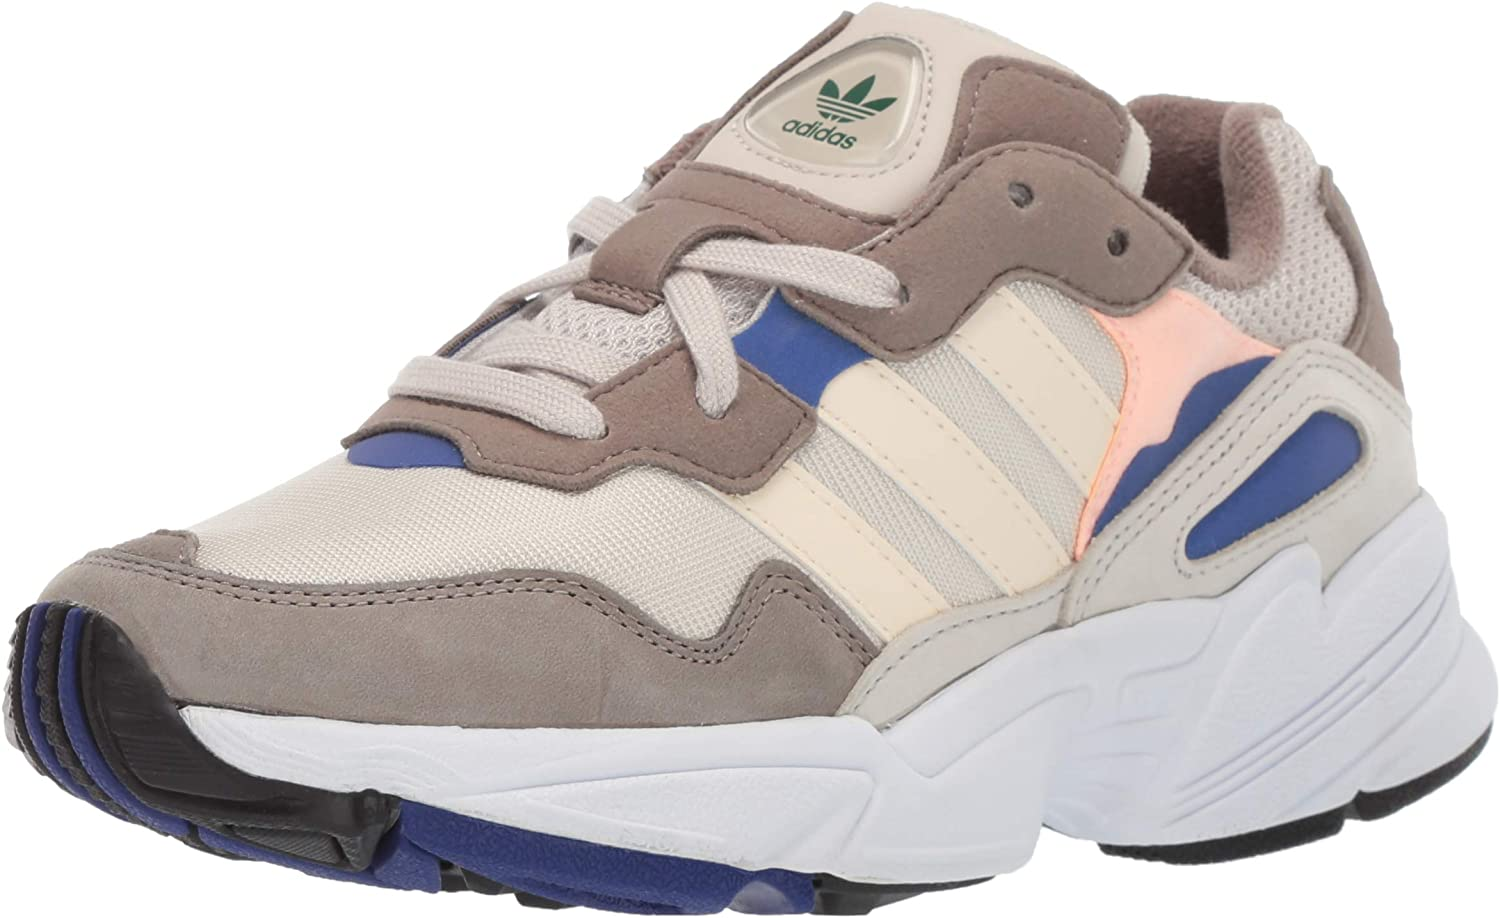 adidas originals yung 96